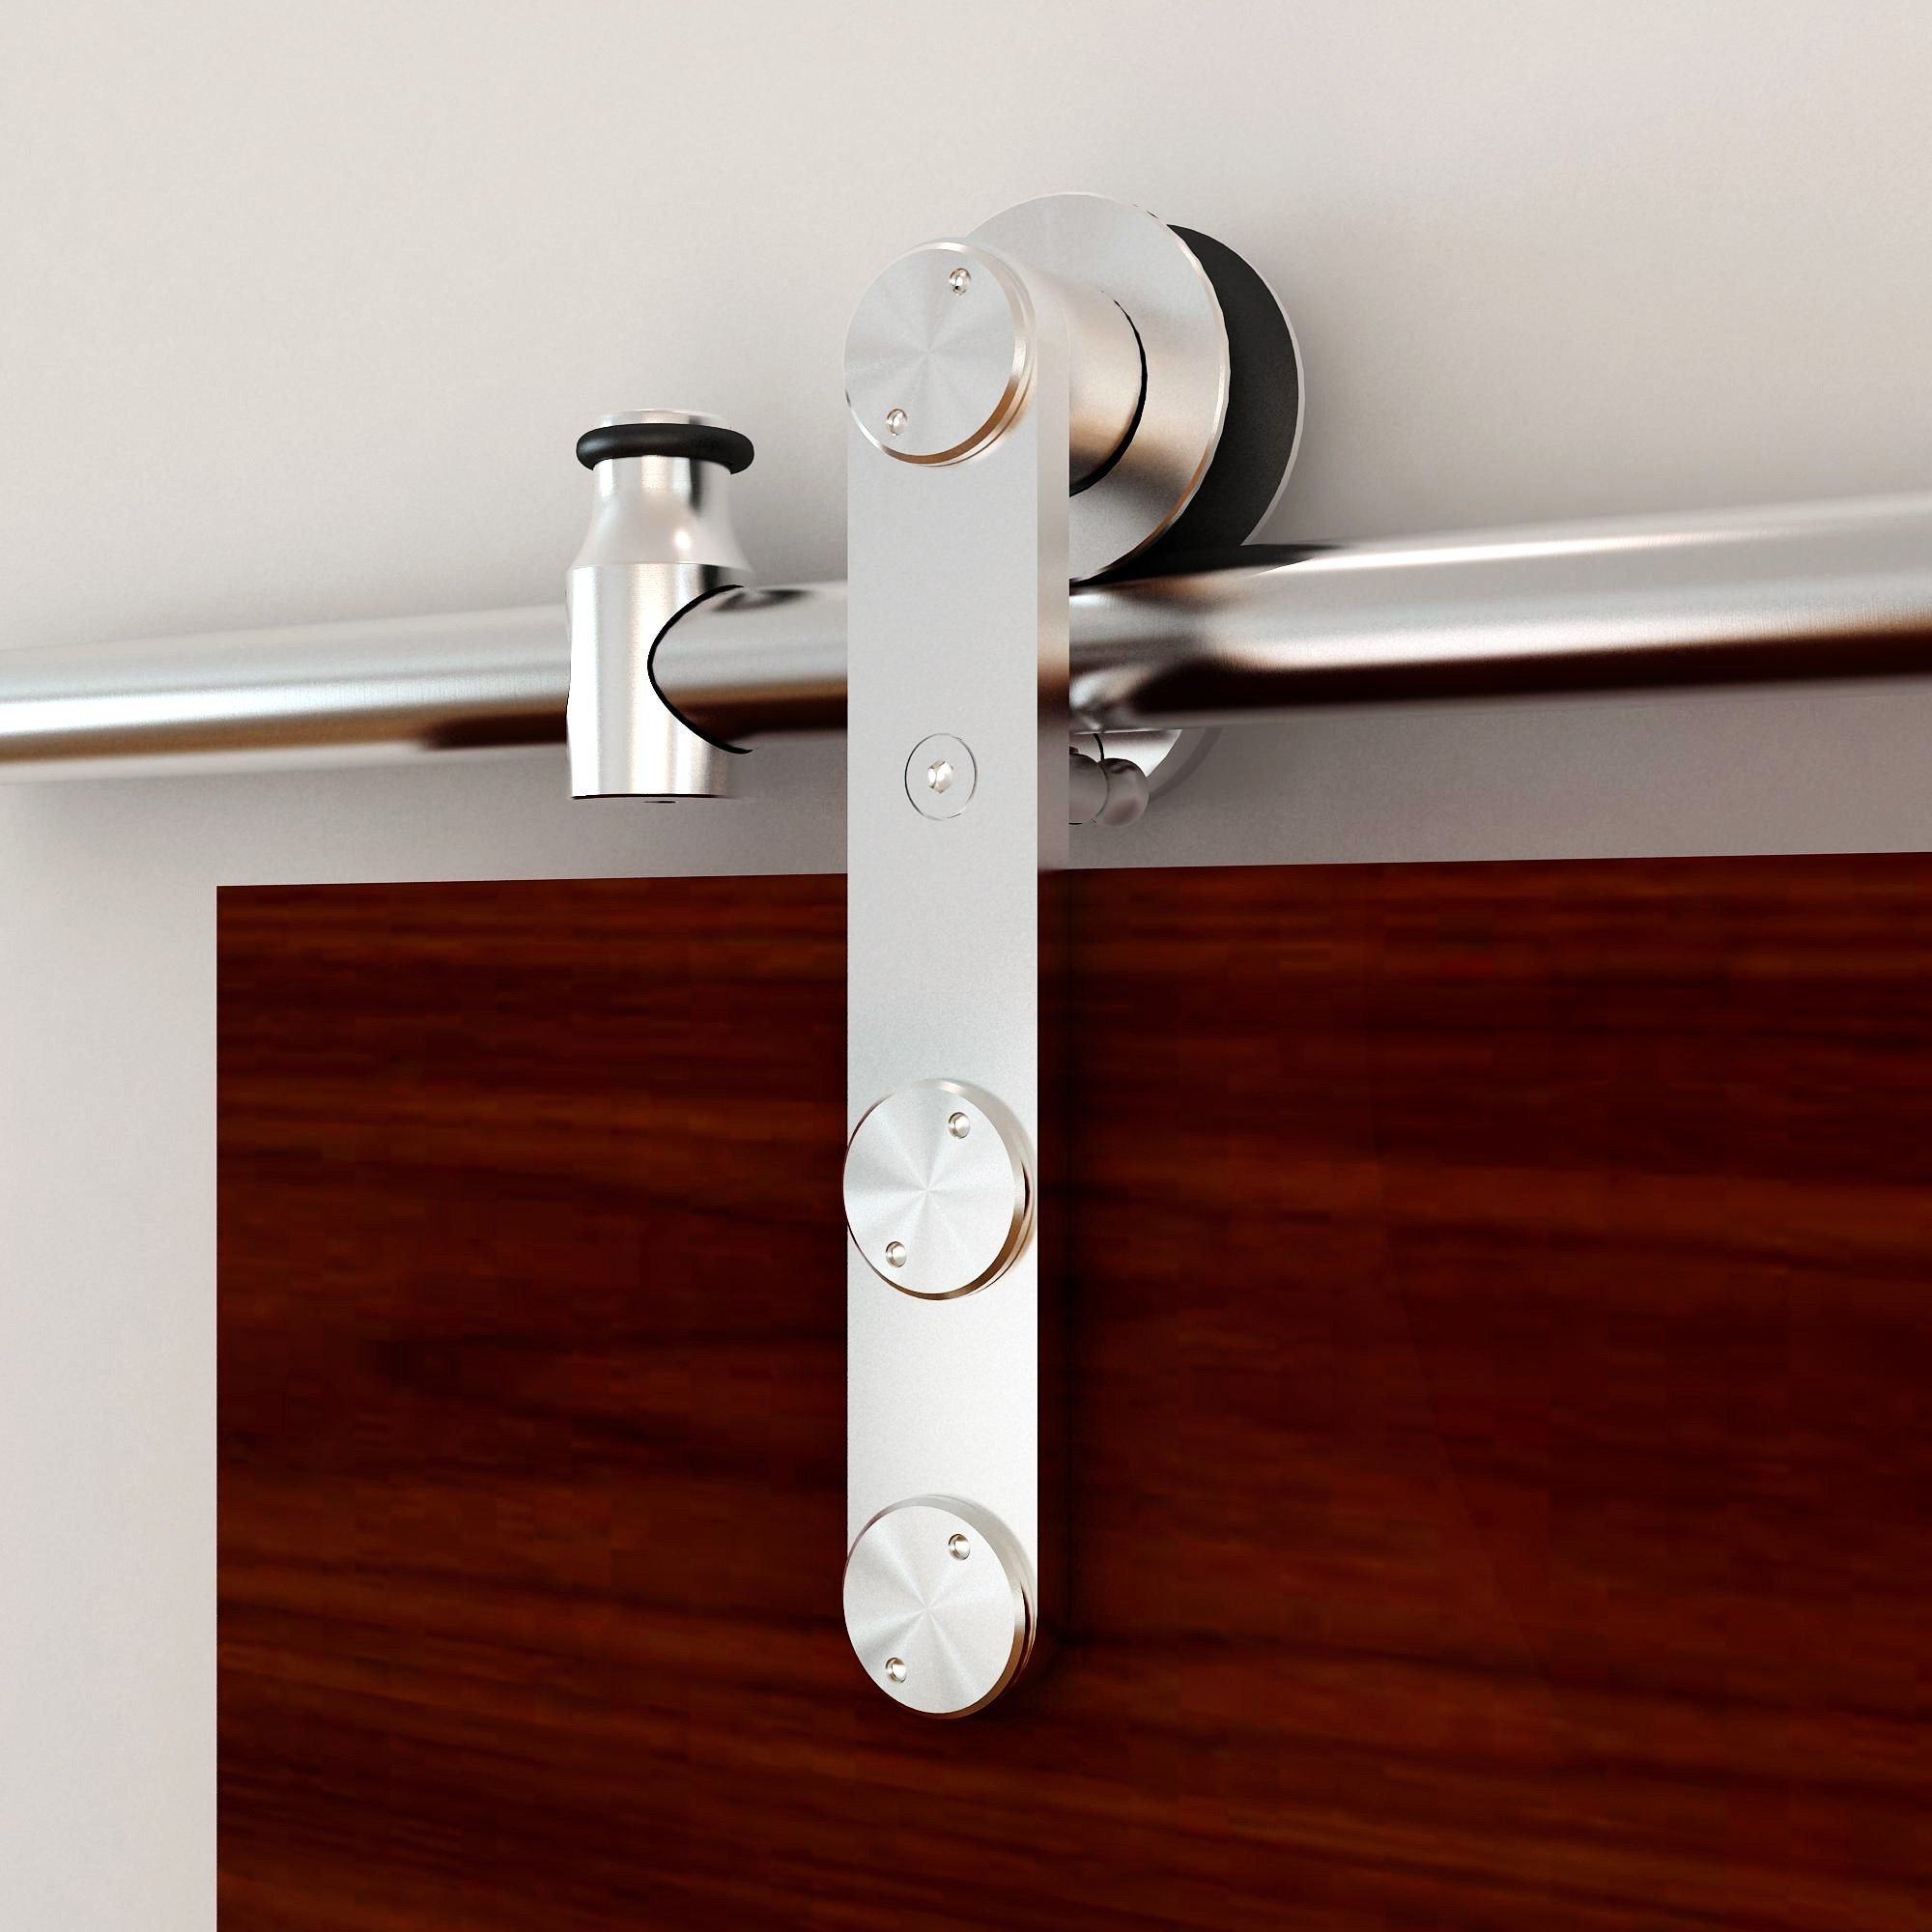 Stainless Steel Stick Style Rolling Door Hardware Kit for Wood or Glass, 96'' L